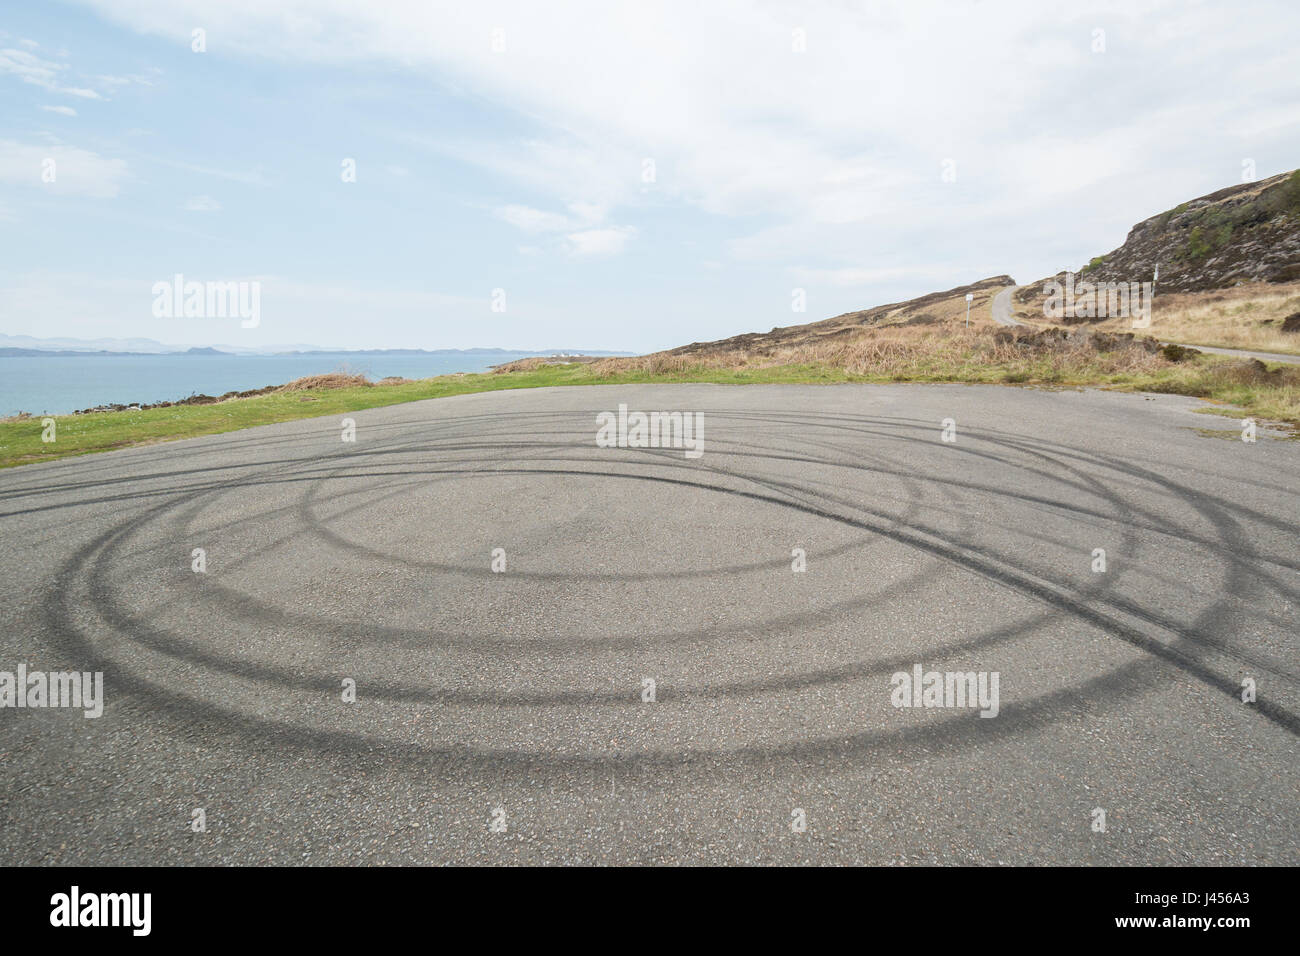 donut car tyre skid marks at viewpoint, Applecross peninsula, Wester Ross, Scottish Highlands, UK - Stock Image